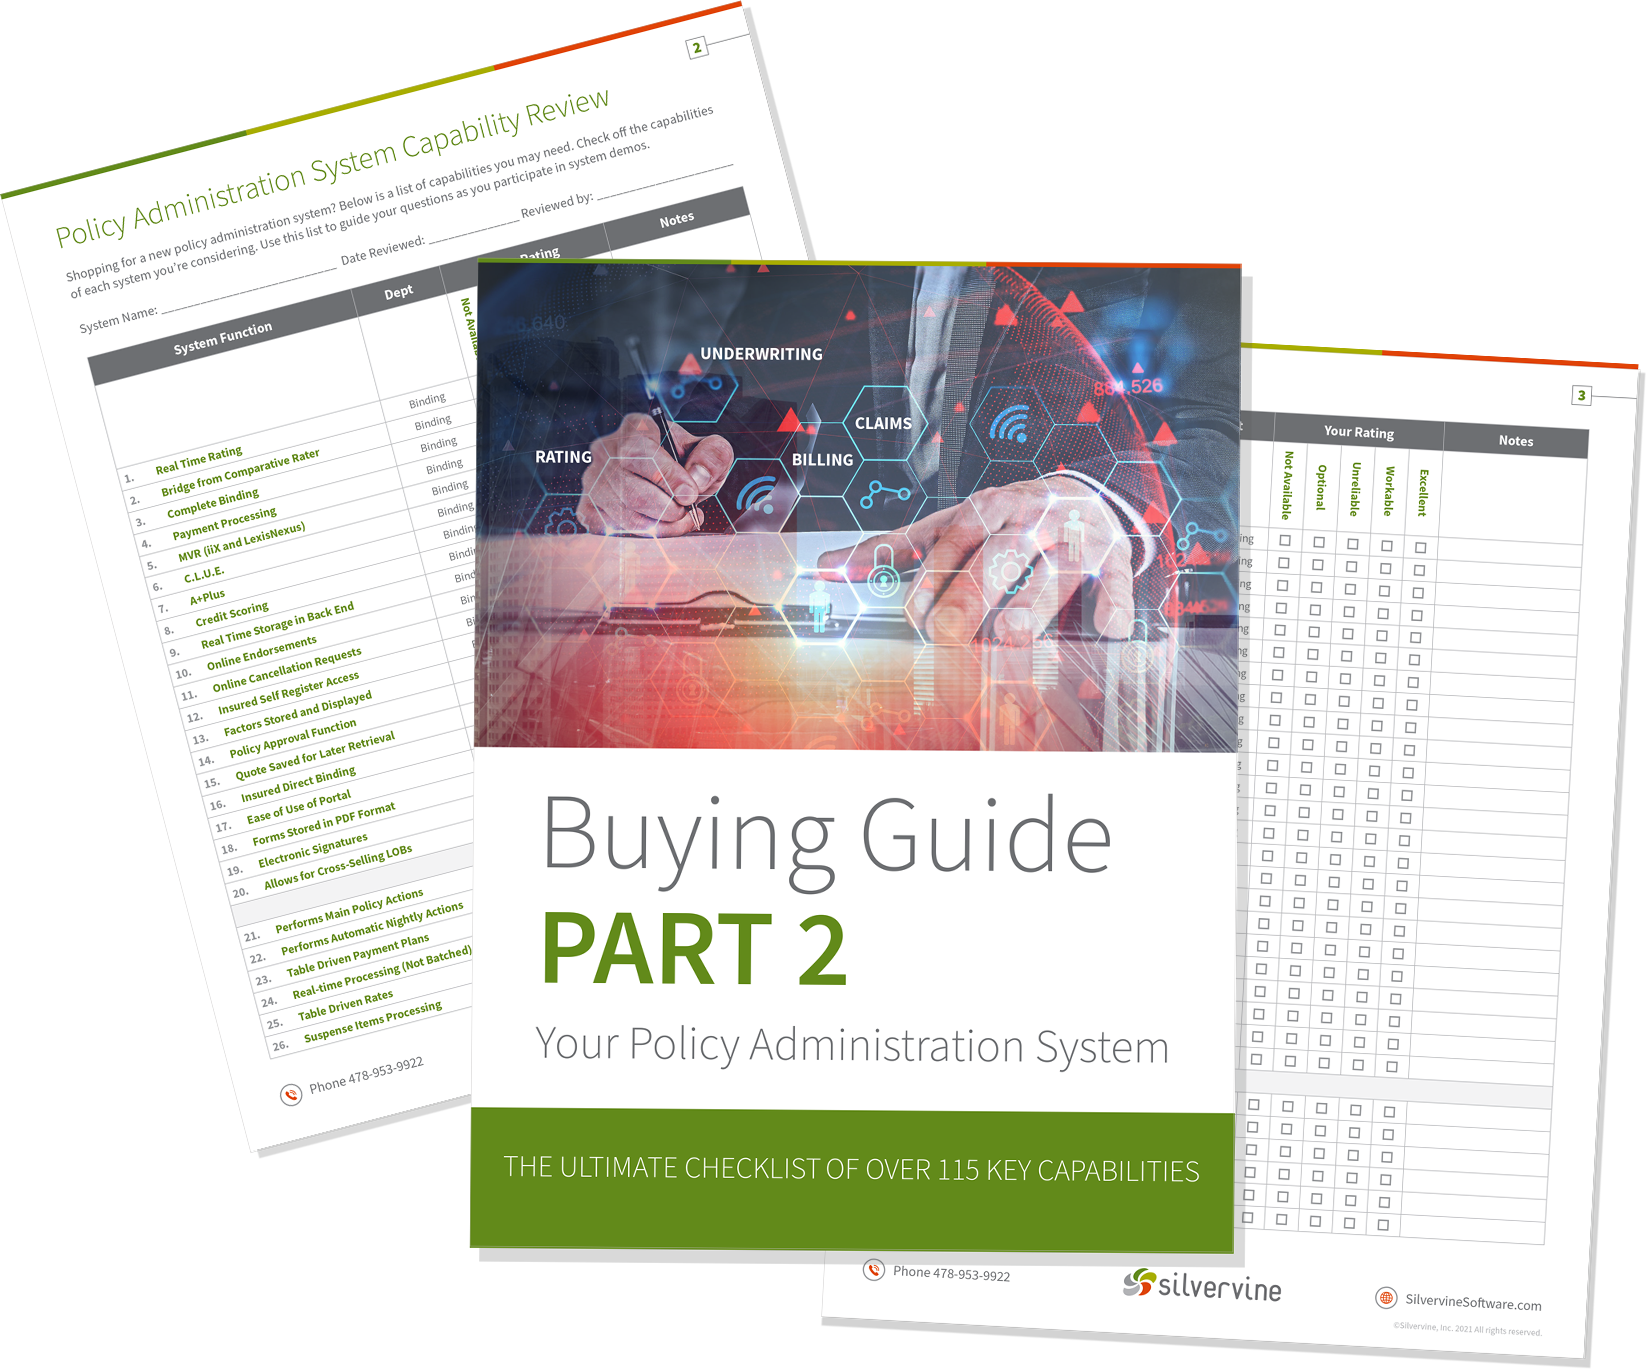 policy-administration-system-buying-guide